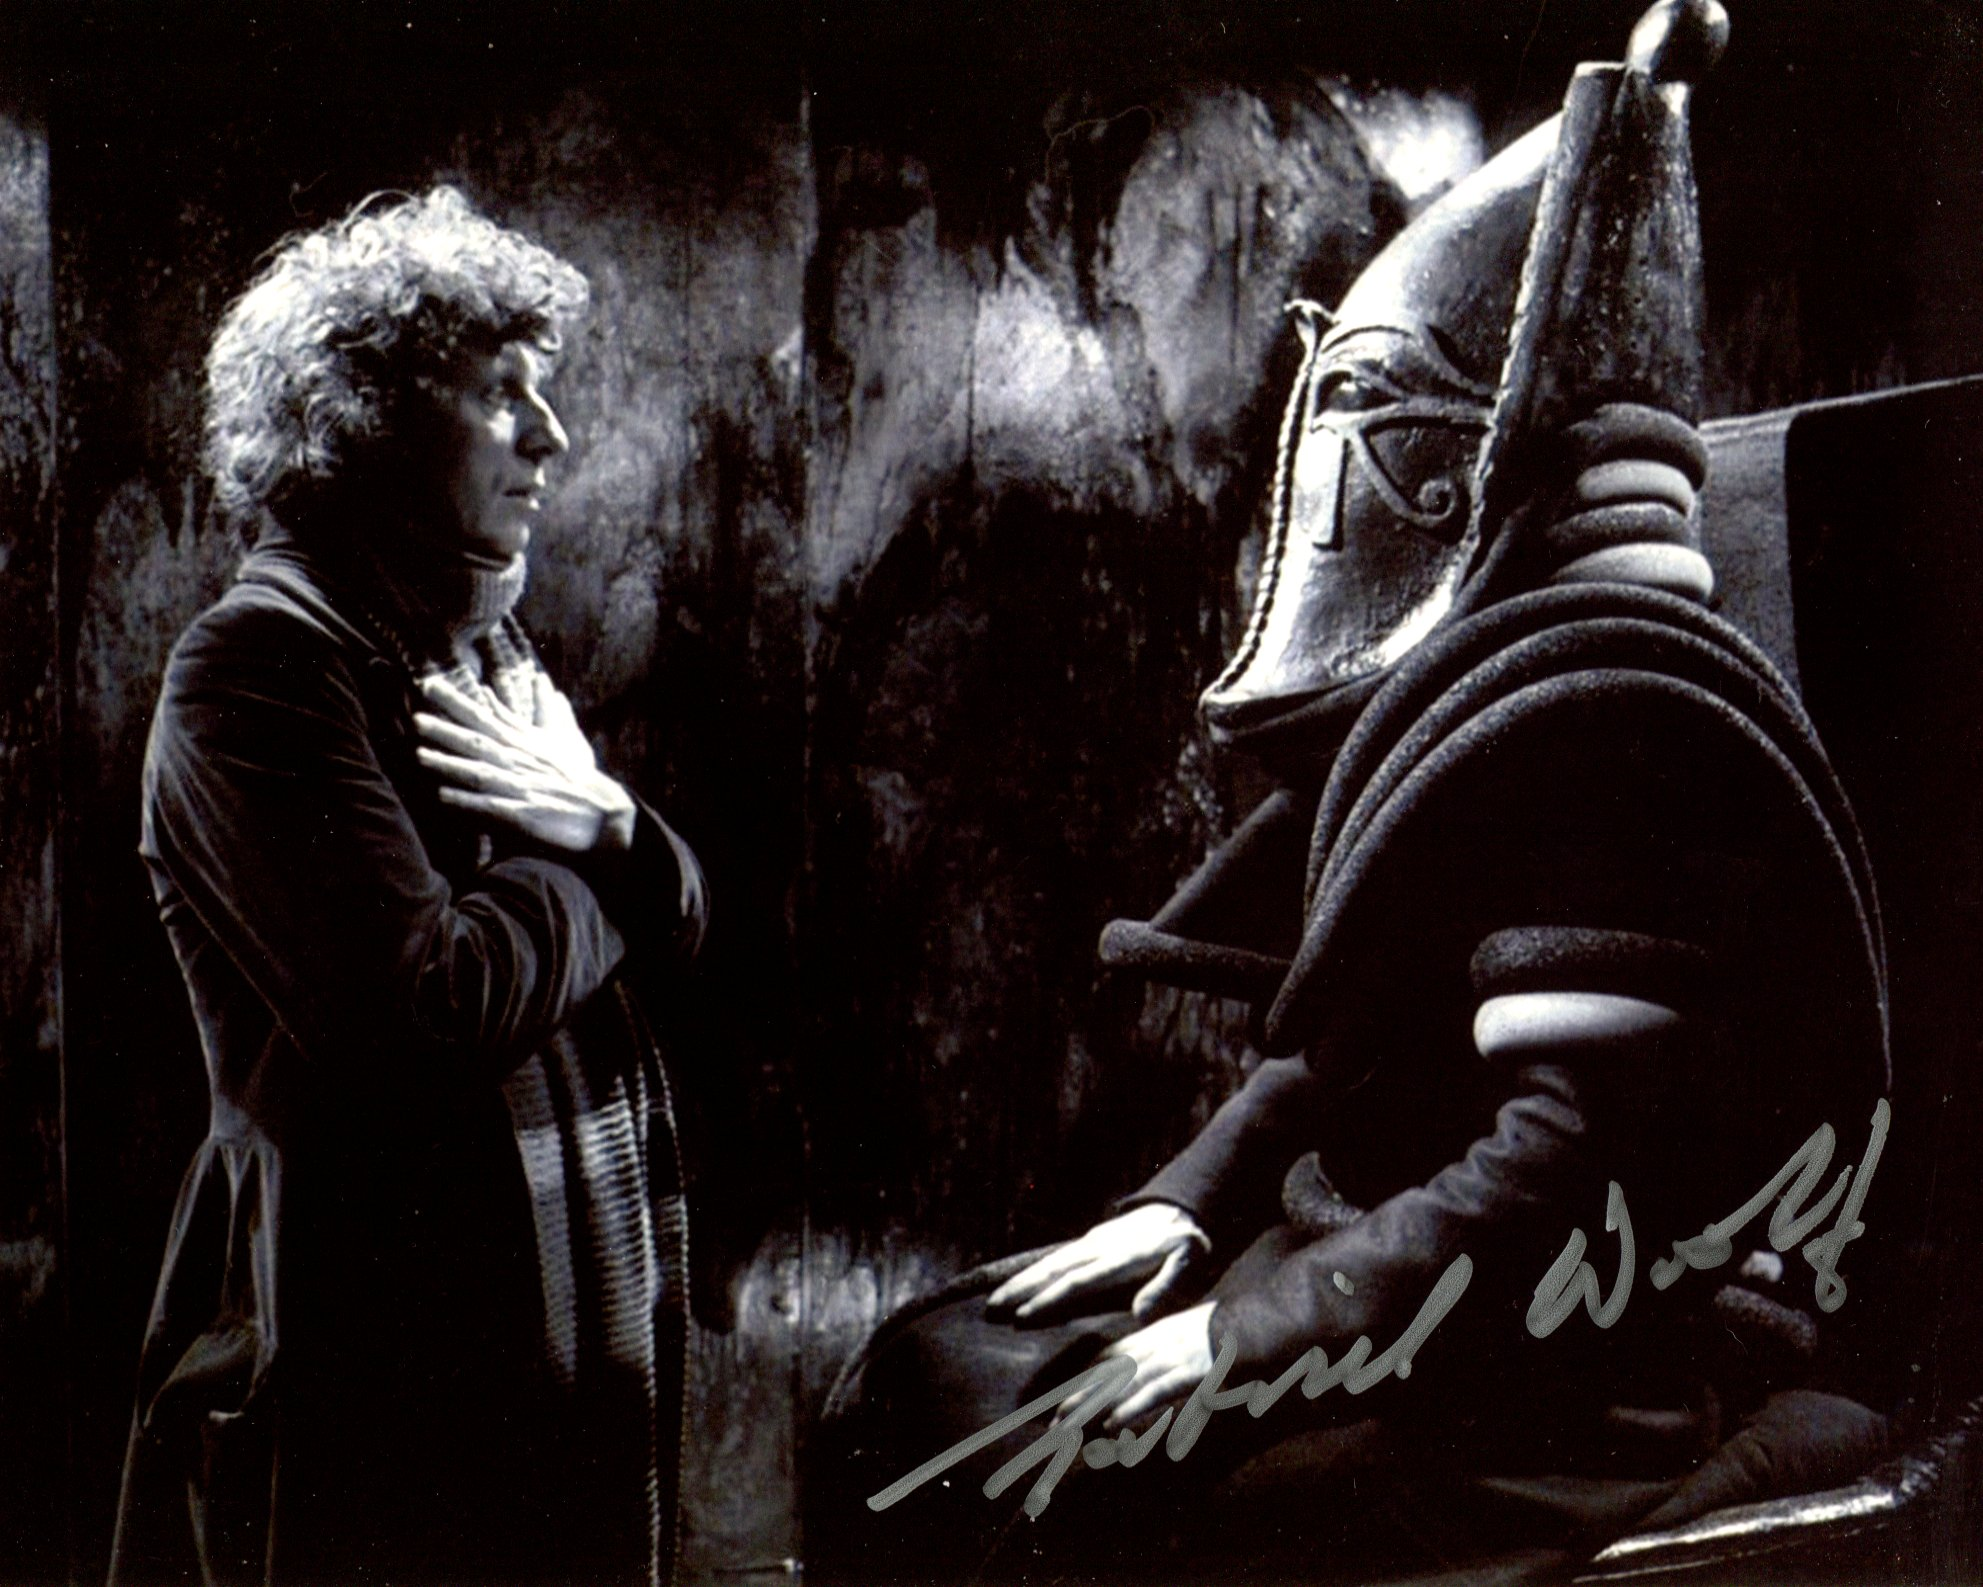 Doctor Who 8x10 inch photo scene from 'Pyramids of Mars' signed by actor Gabriel Woolf. Good